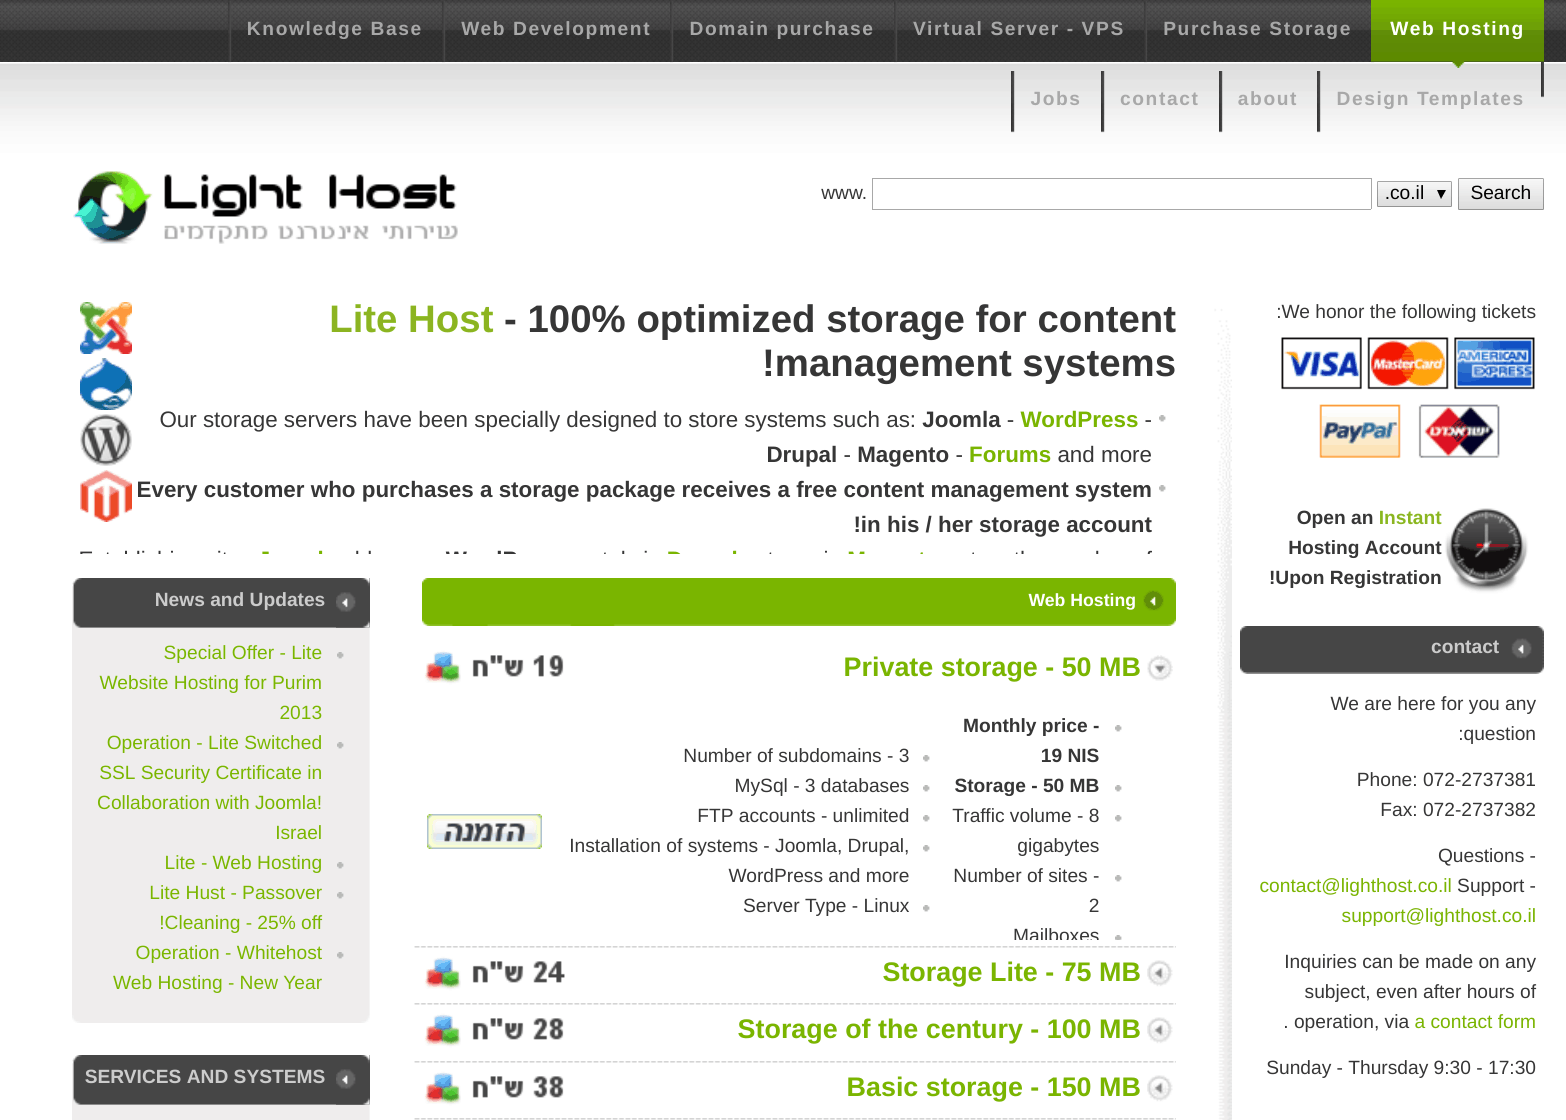 Light Host